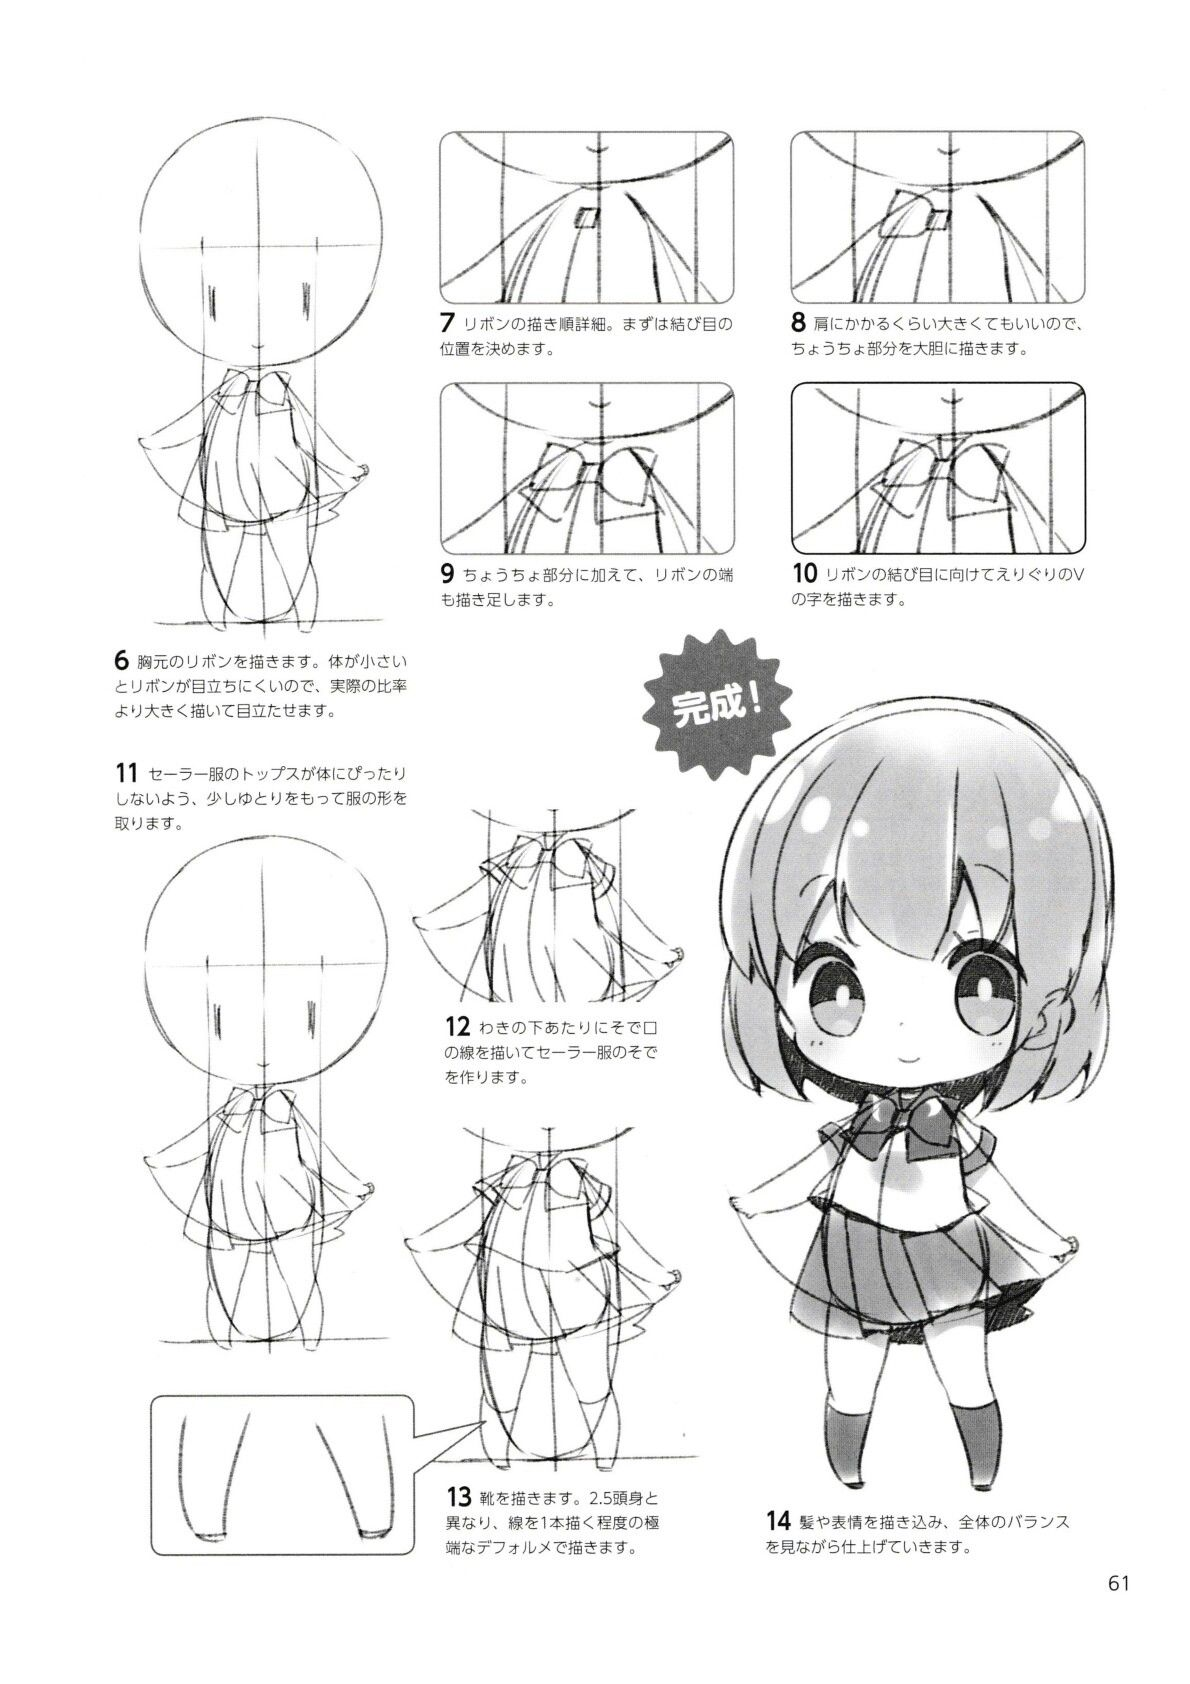 How To Draw Chibis 61 Anime Drawing Books Manga Drawing Tutorials Chibi Drawings